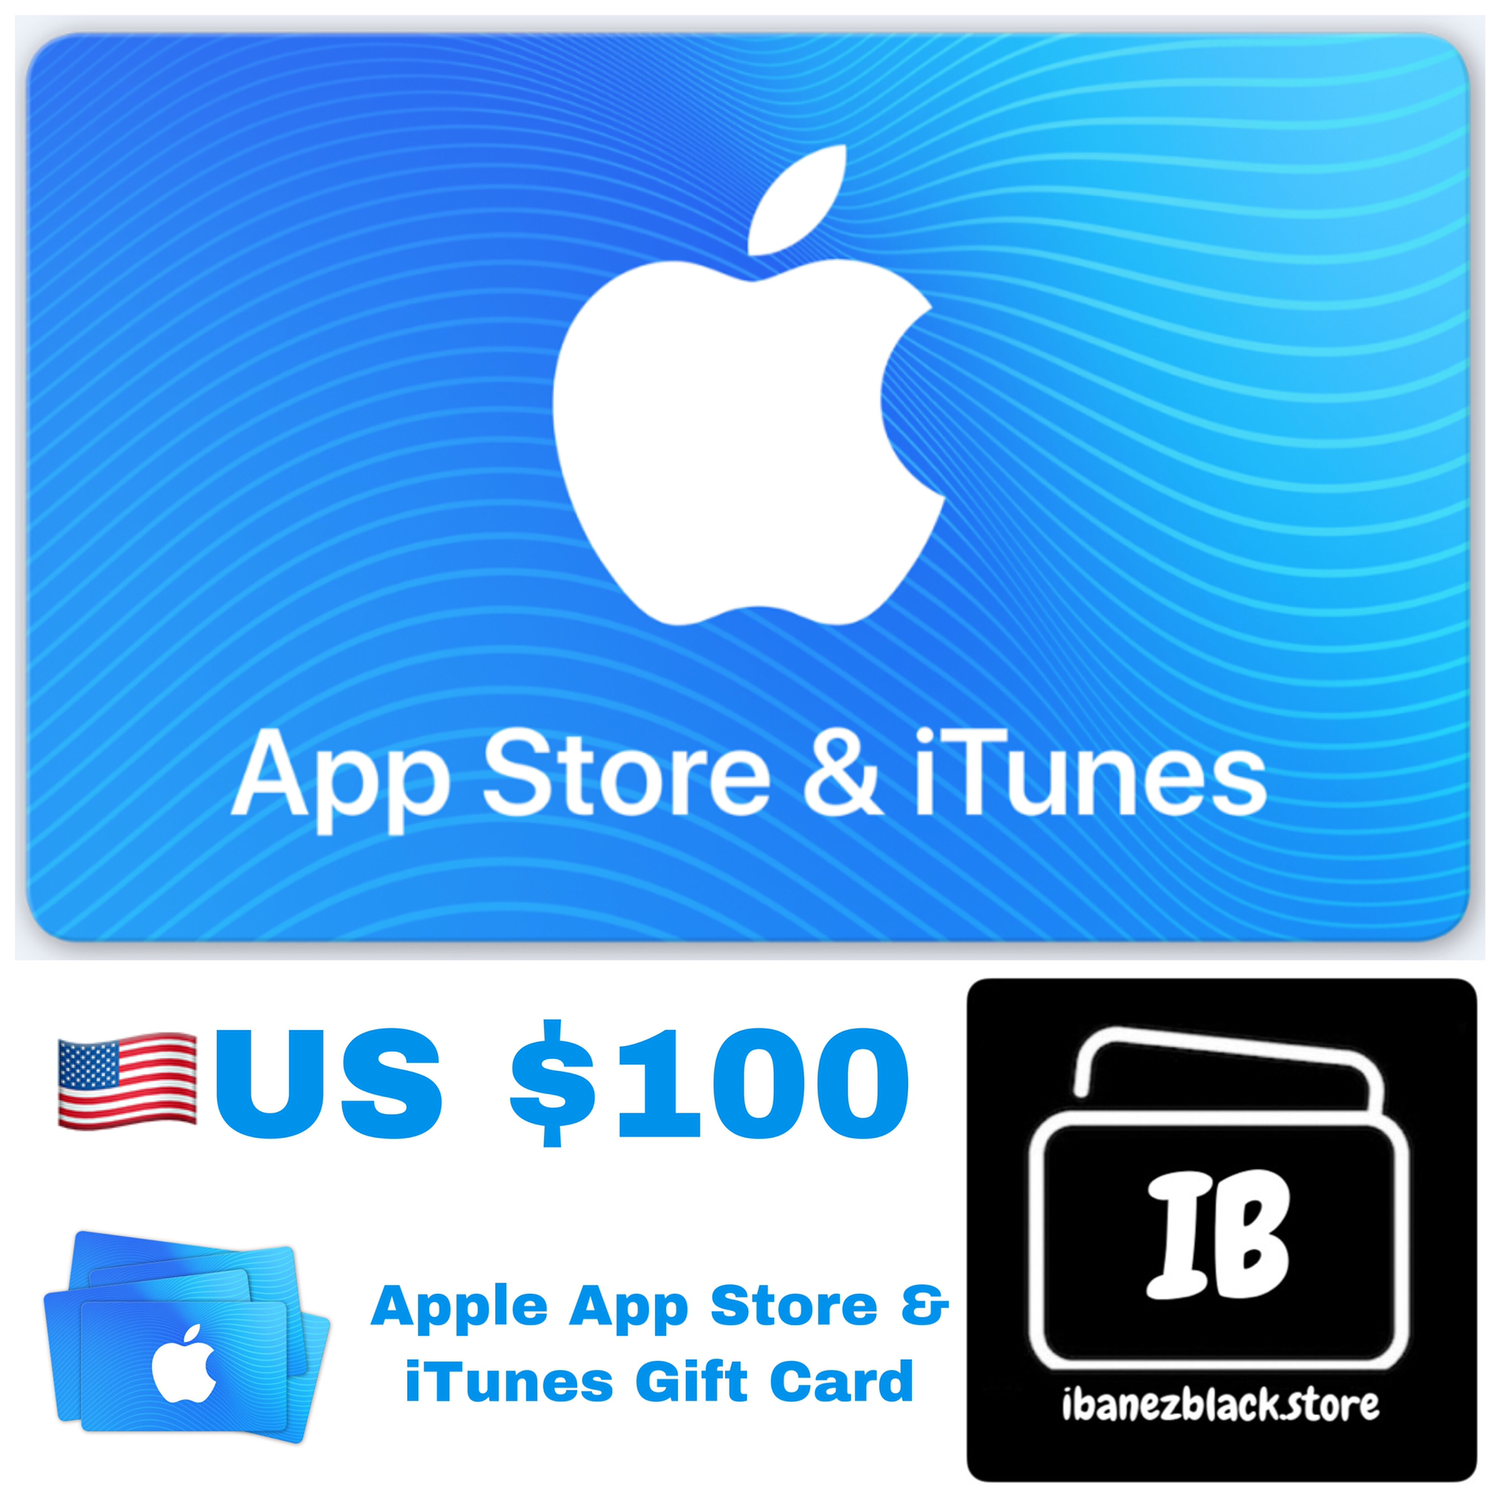 Apple App Store & iTunes Gift Cards US $100